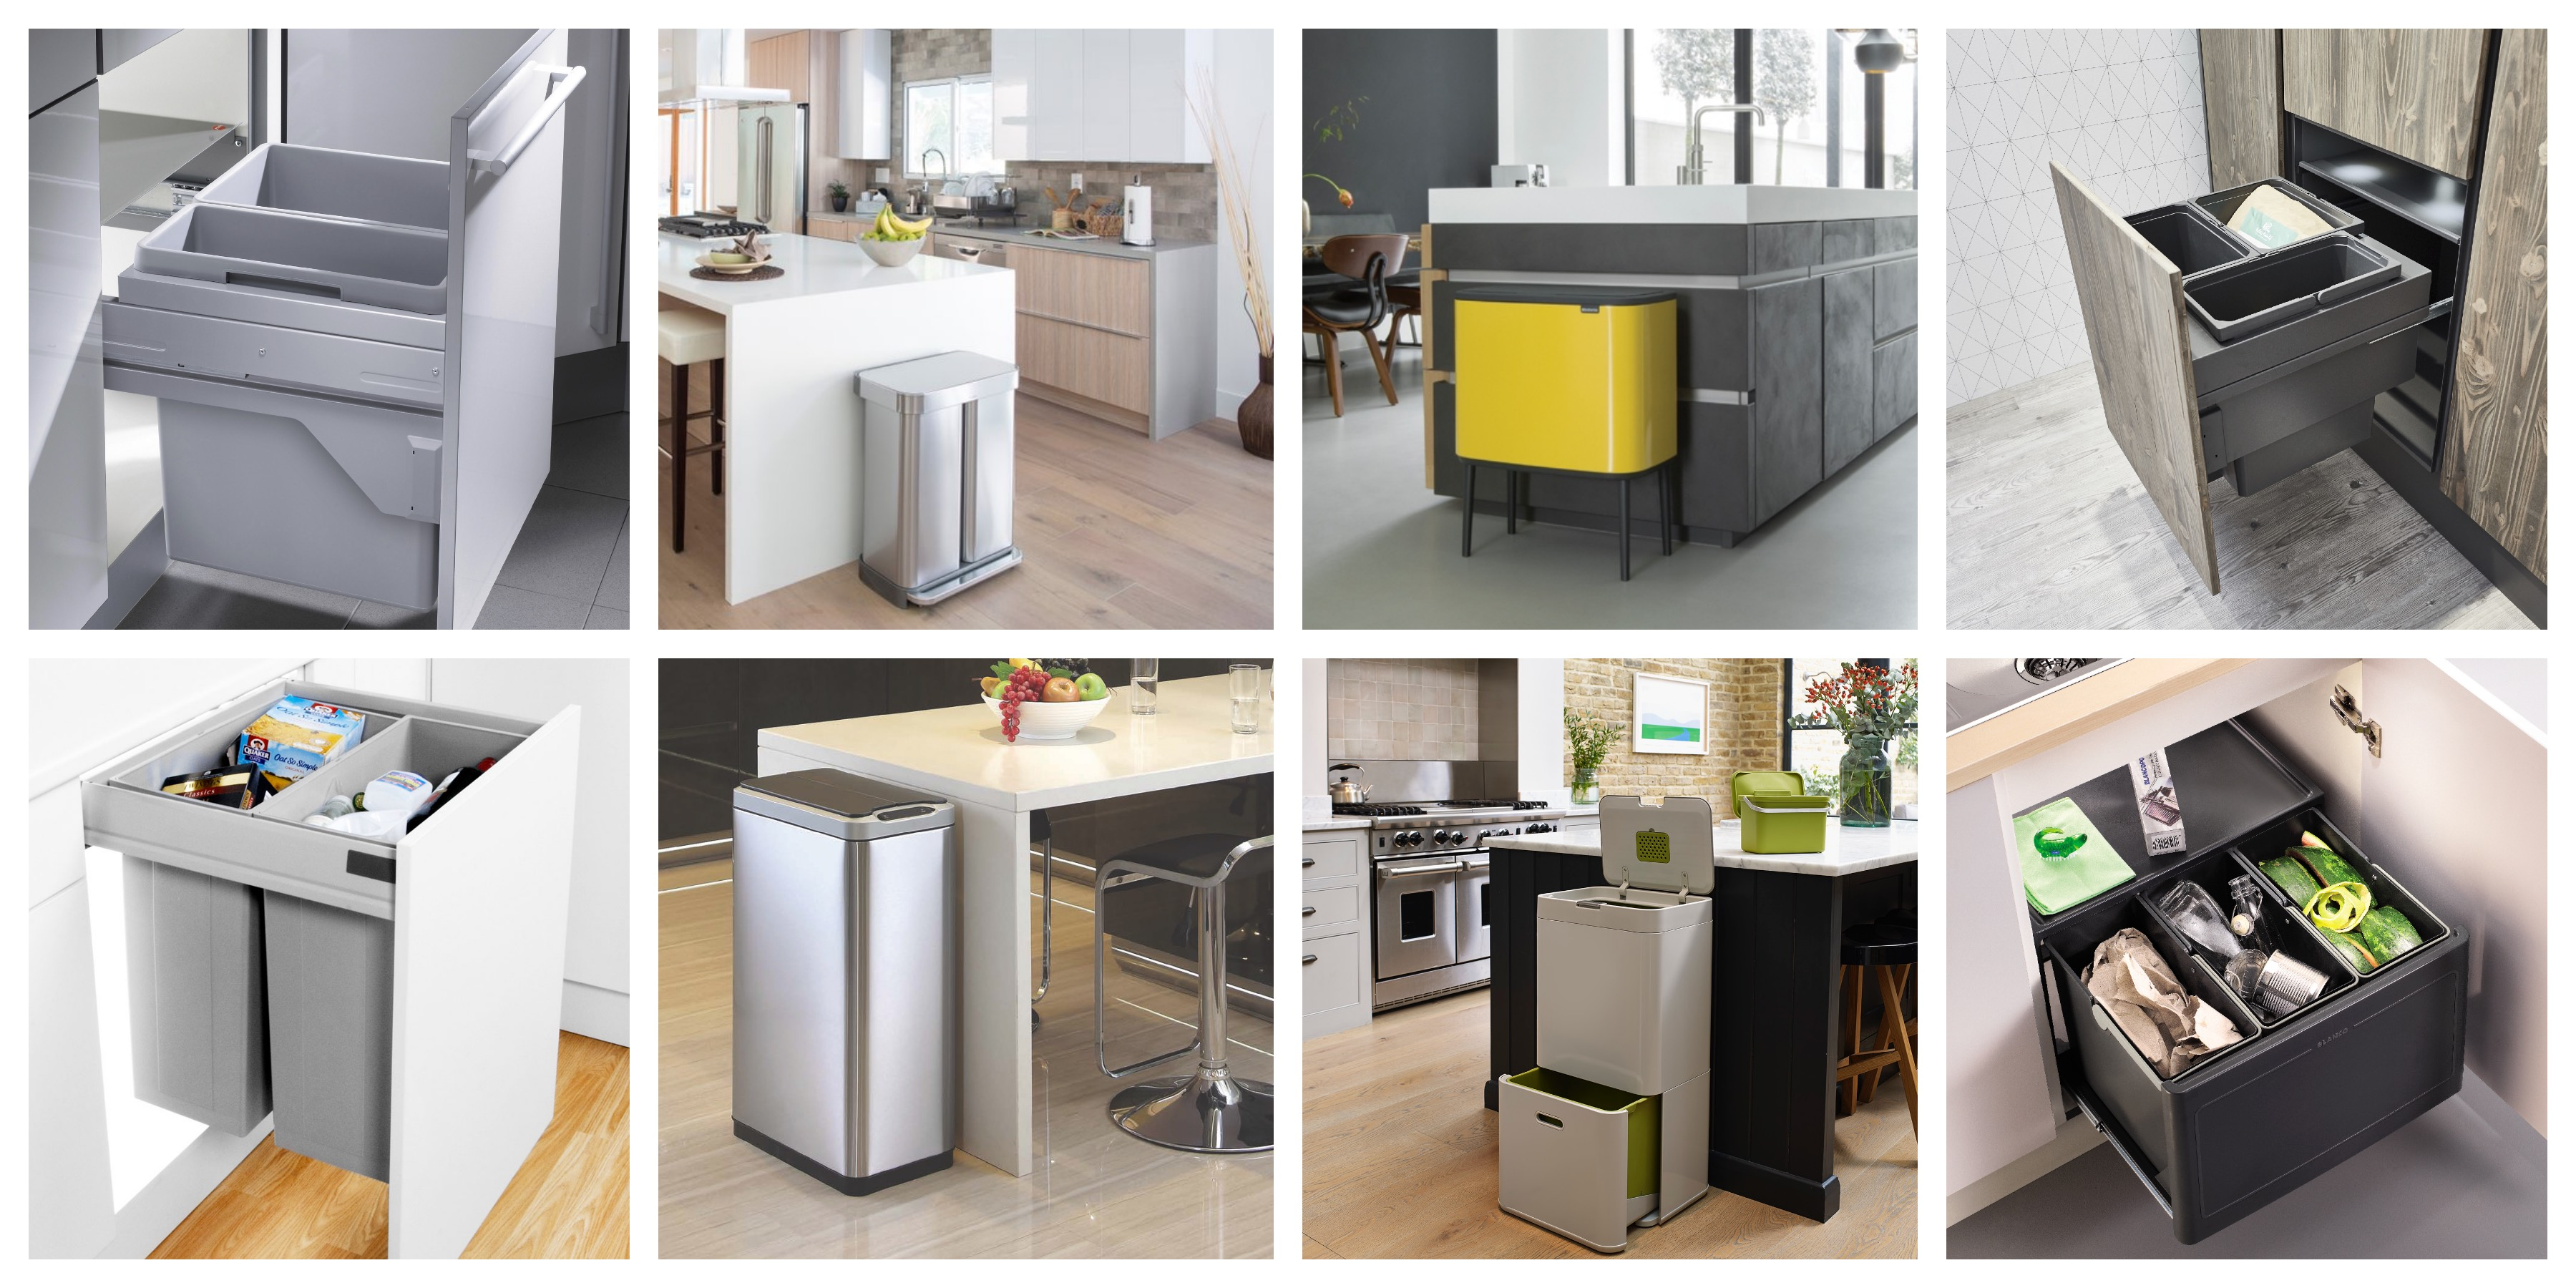 Our Top Ten Kitchen Recycling Bins for 2020